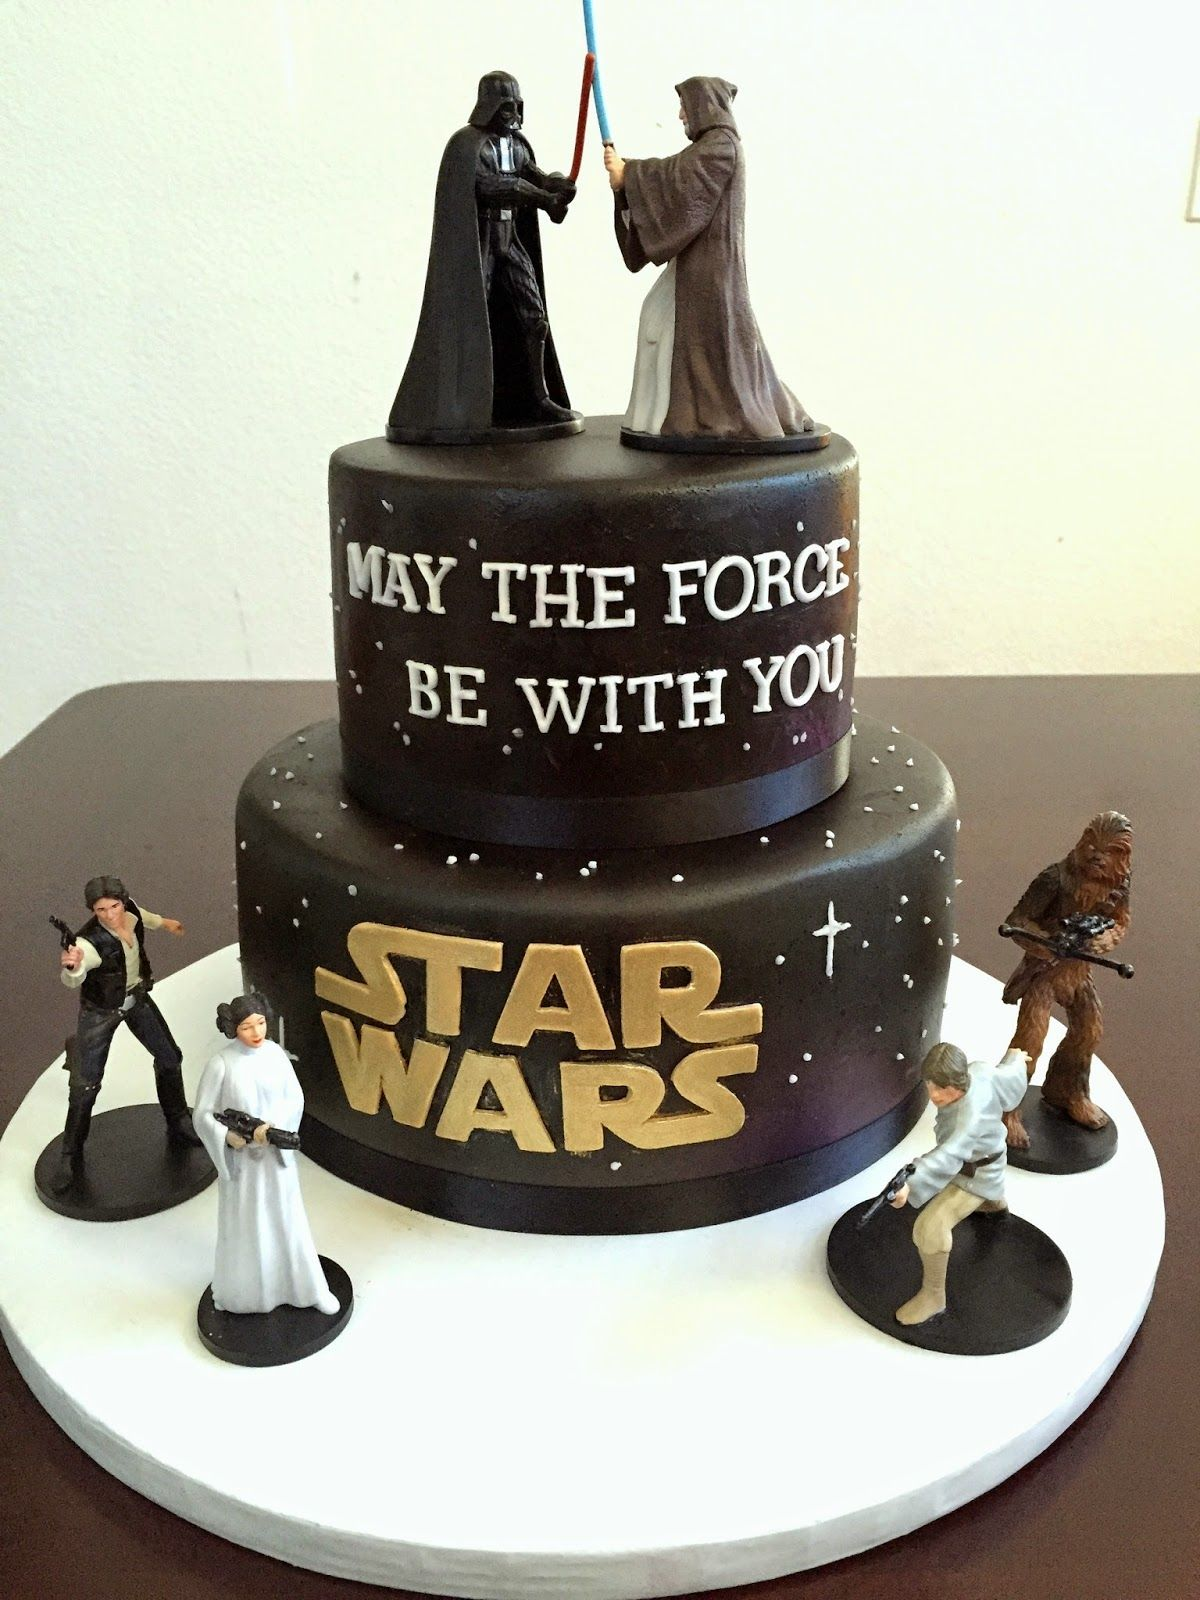 Star Wars Cake Tutorial Cake Decoration Pinterest Star wars